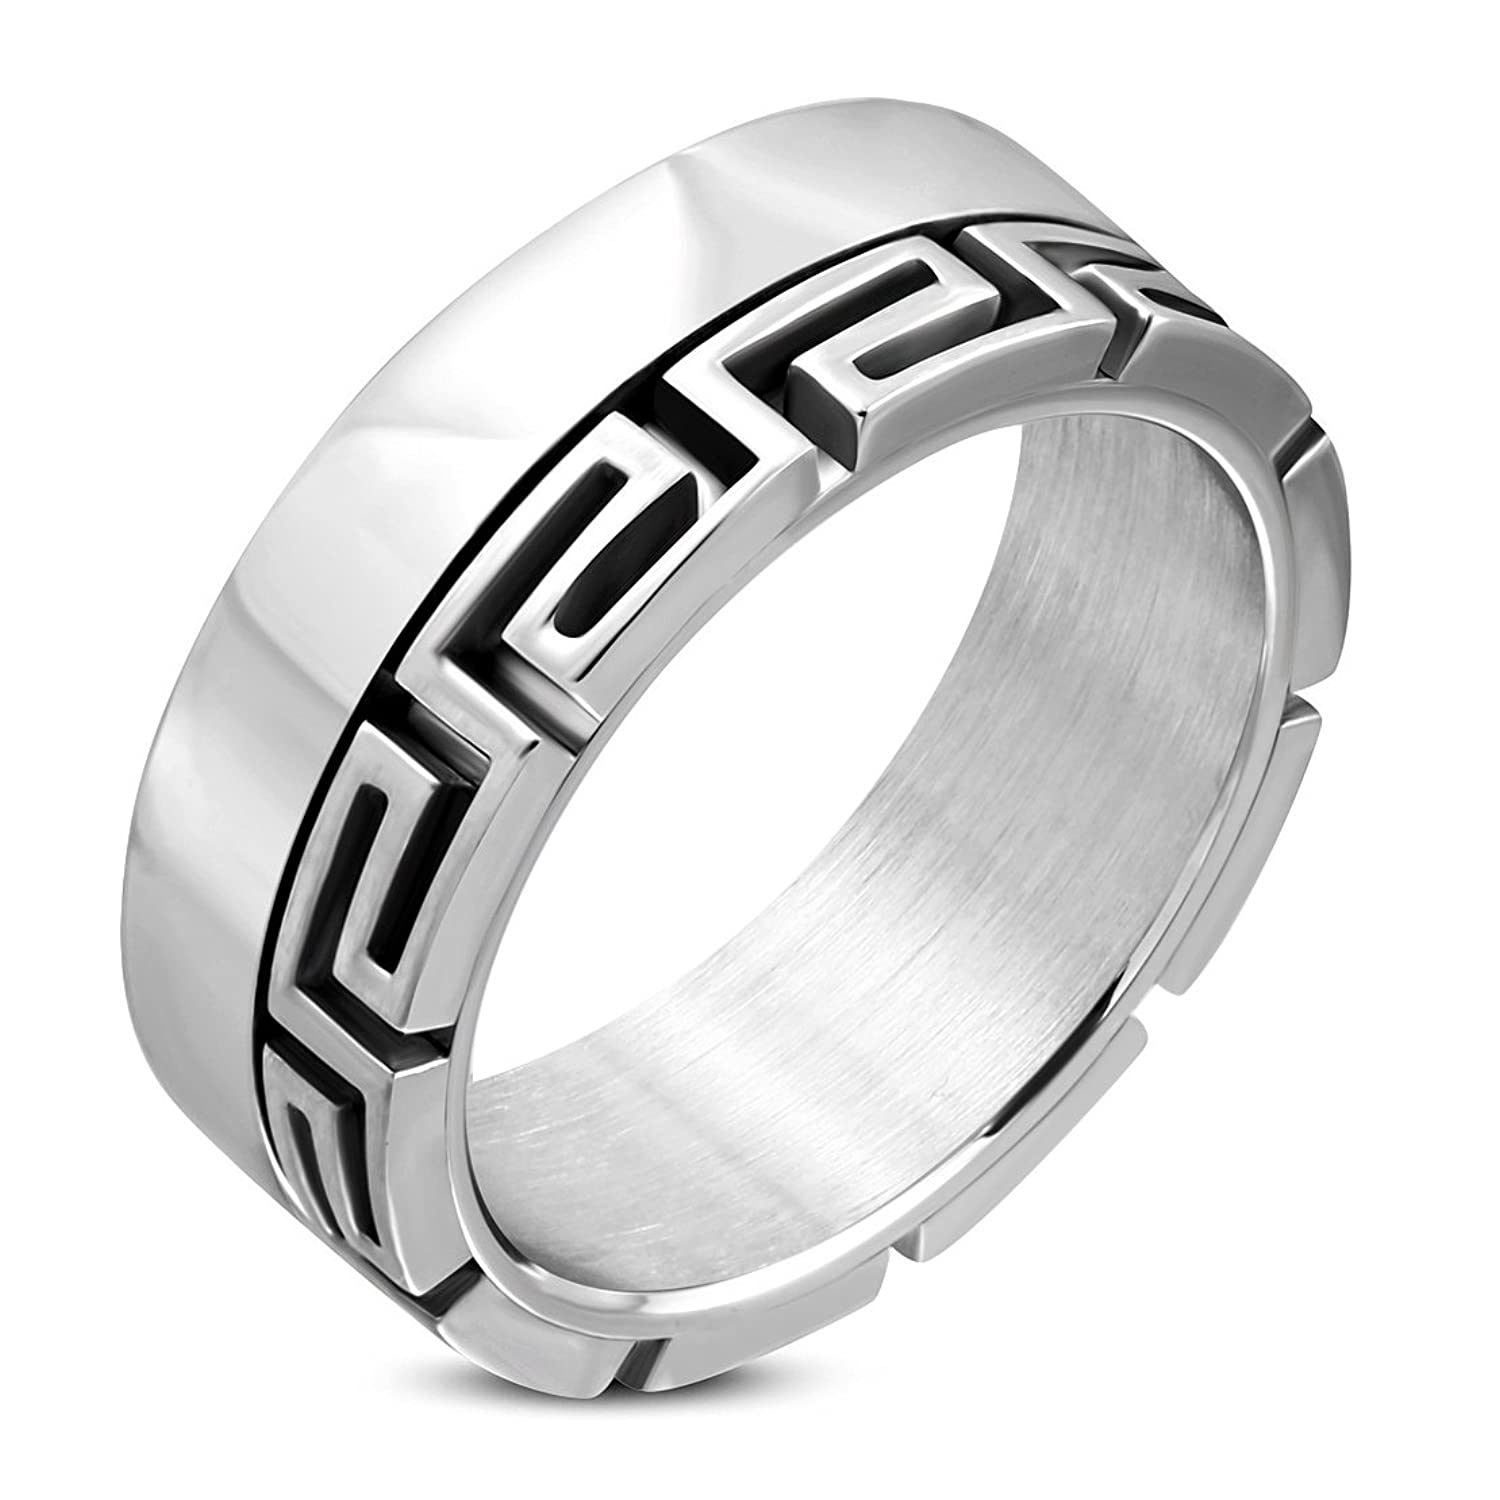 Stainless Steel Cut-out Greek Key Band Ring